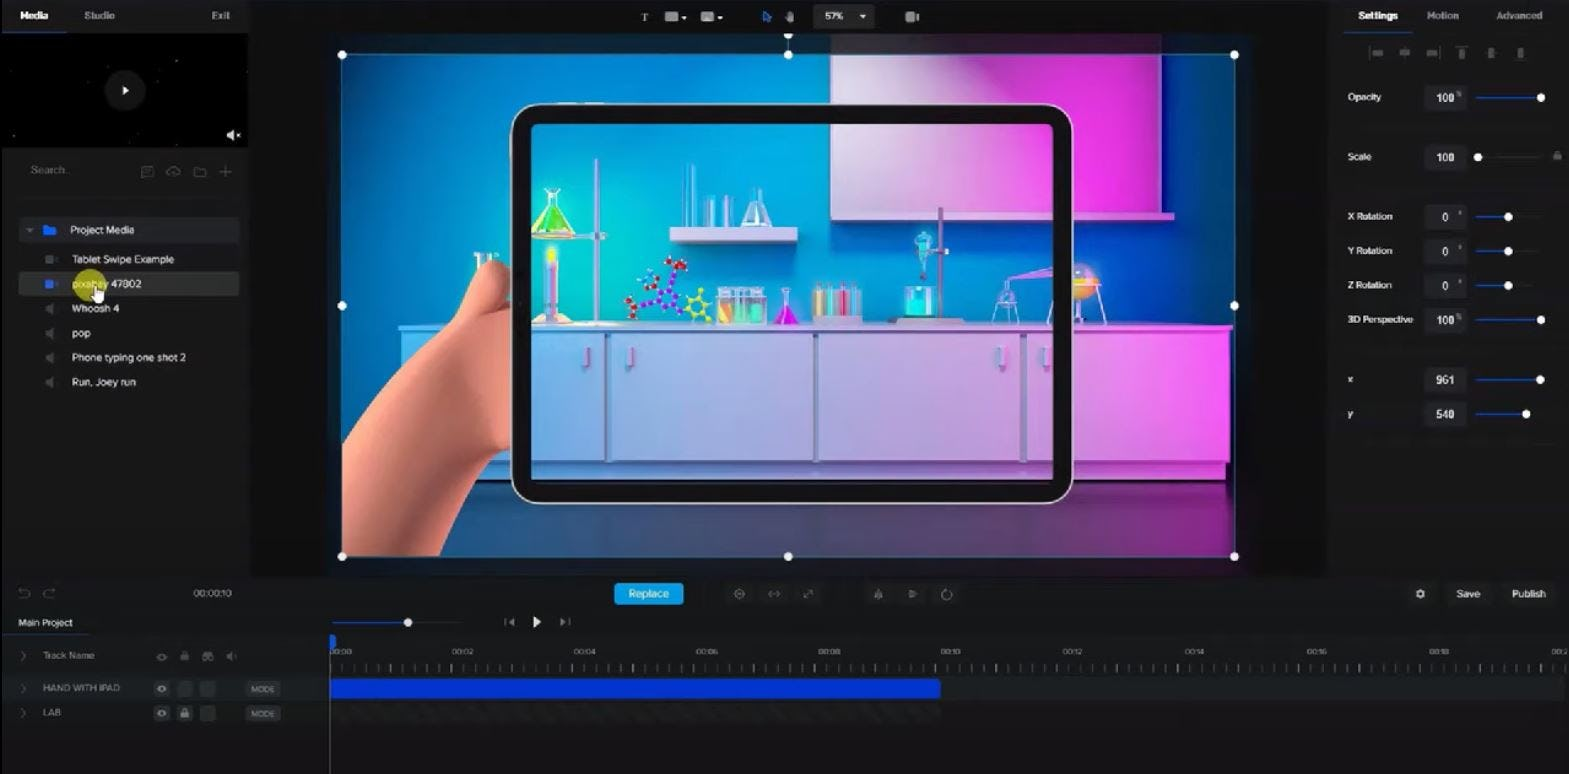 CreateStudio tablet swipe